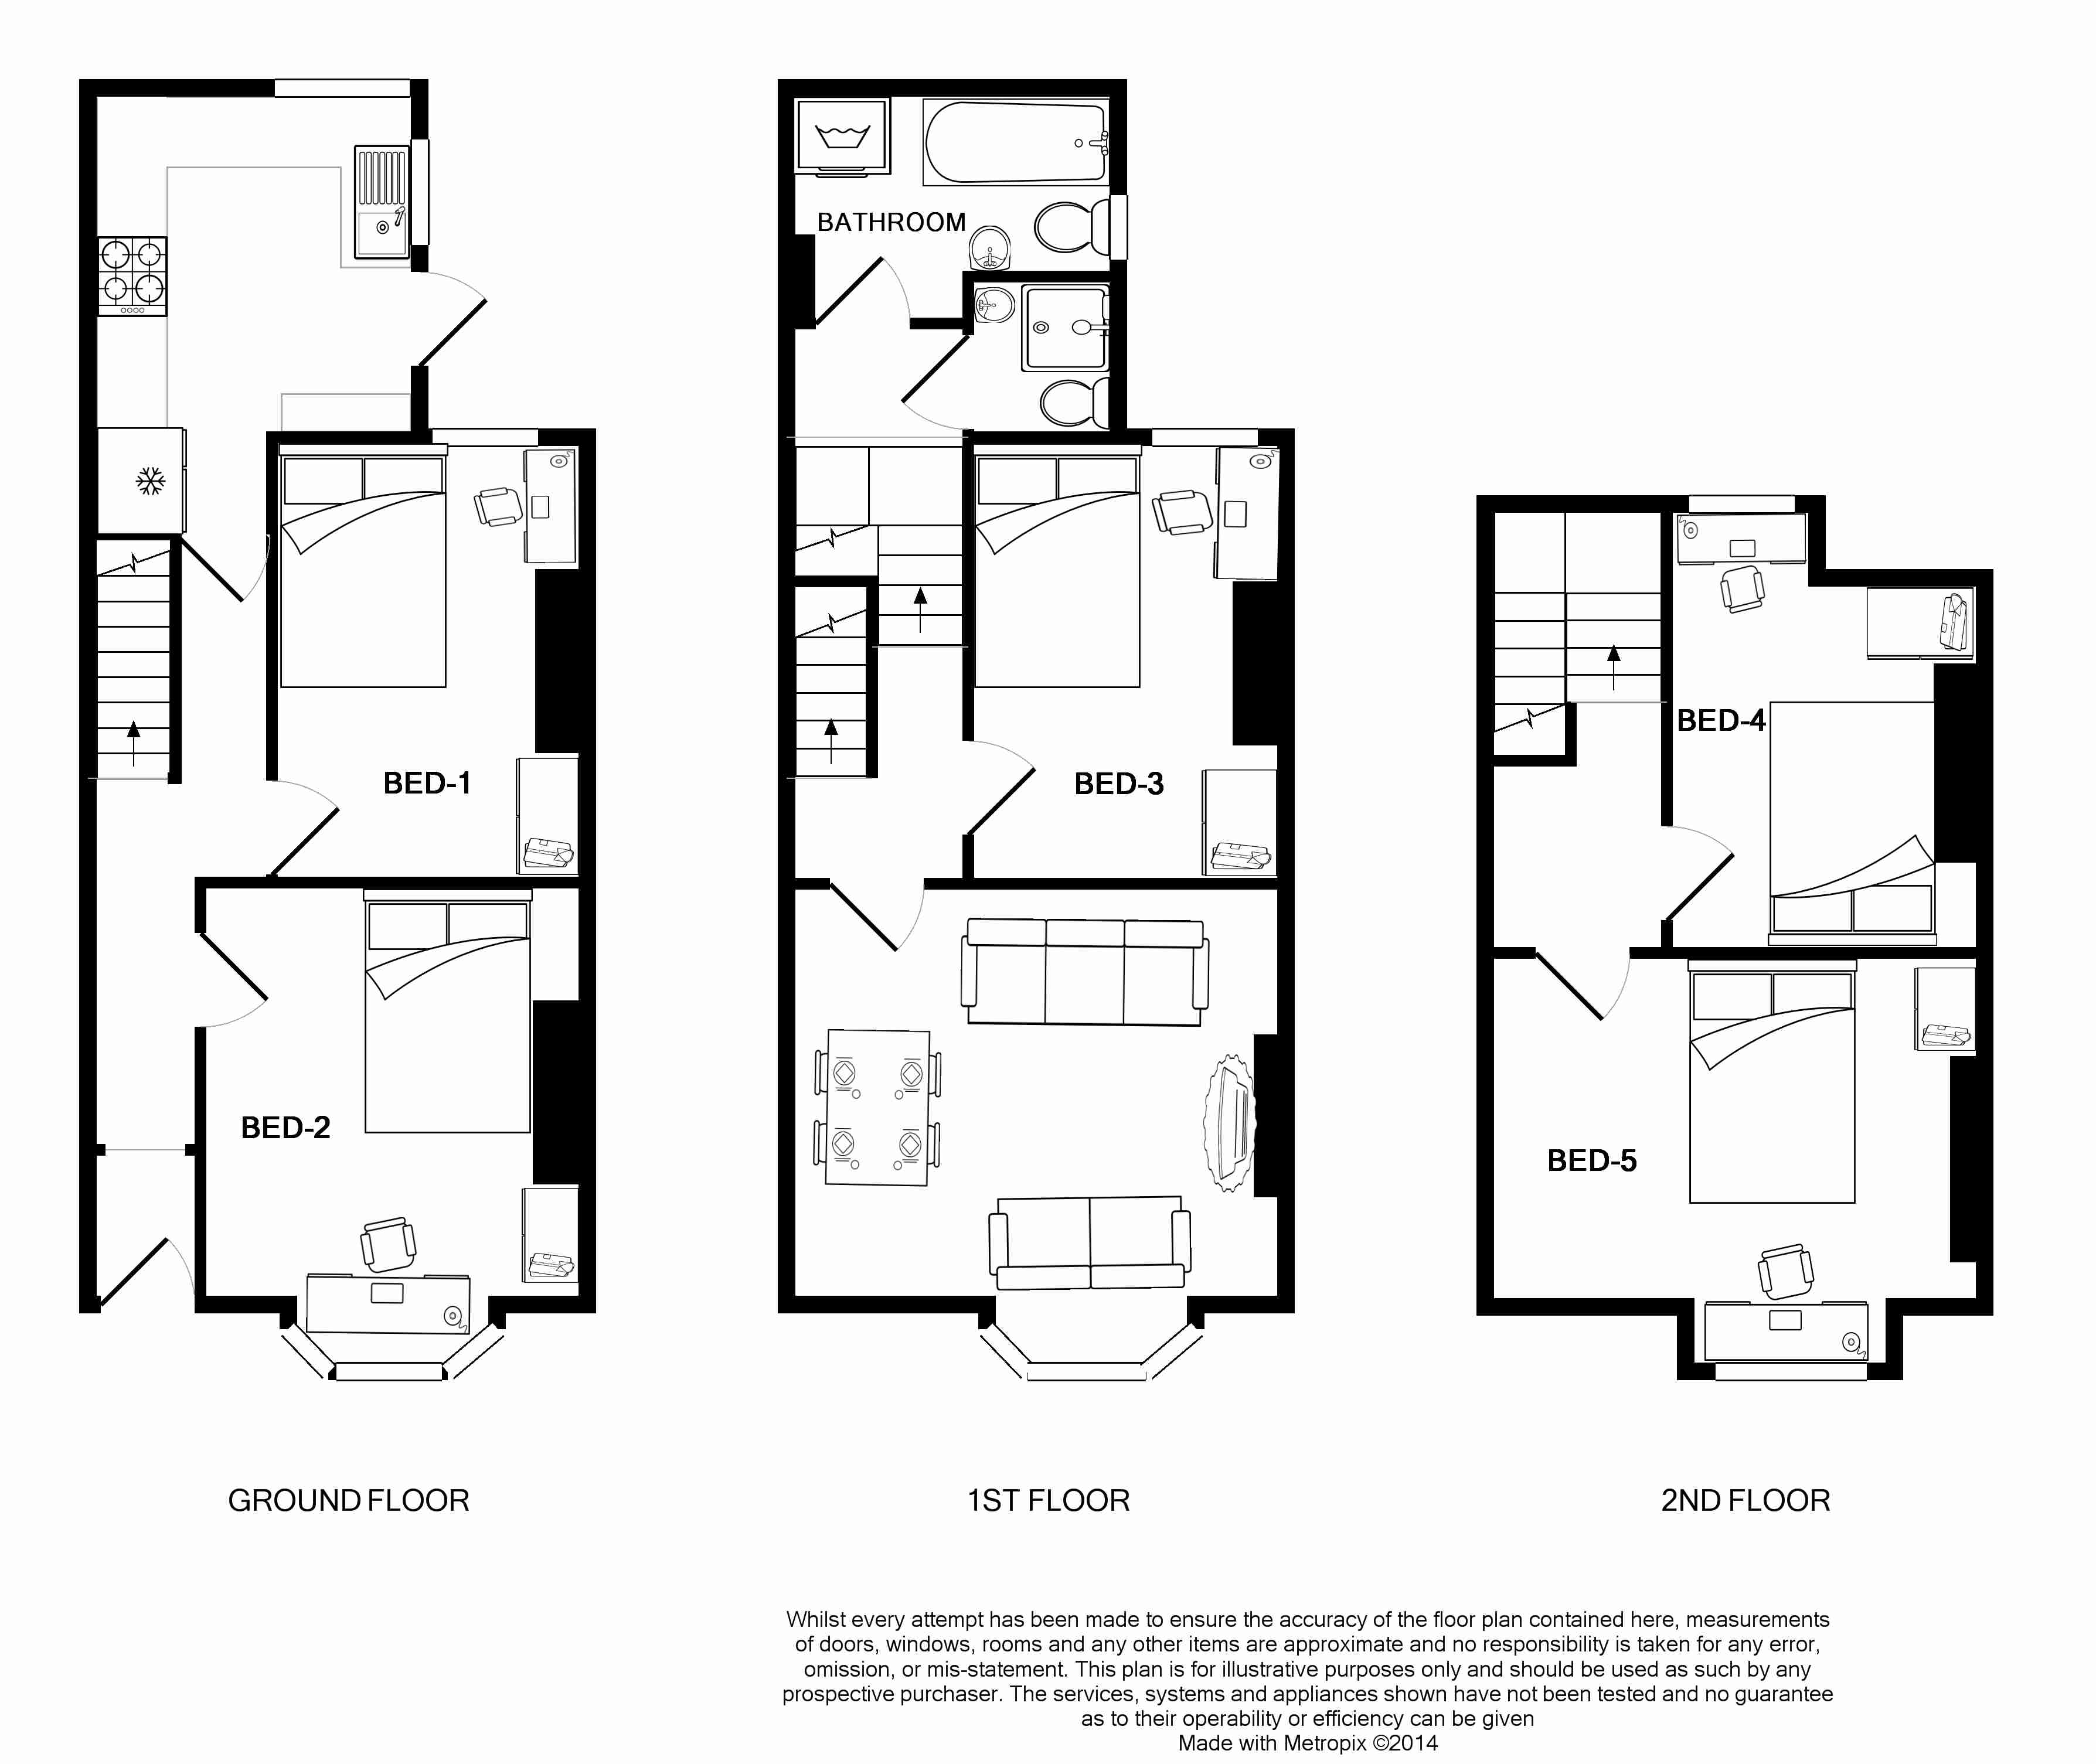 13 Mowbray Avenue Floorplans